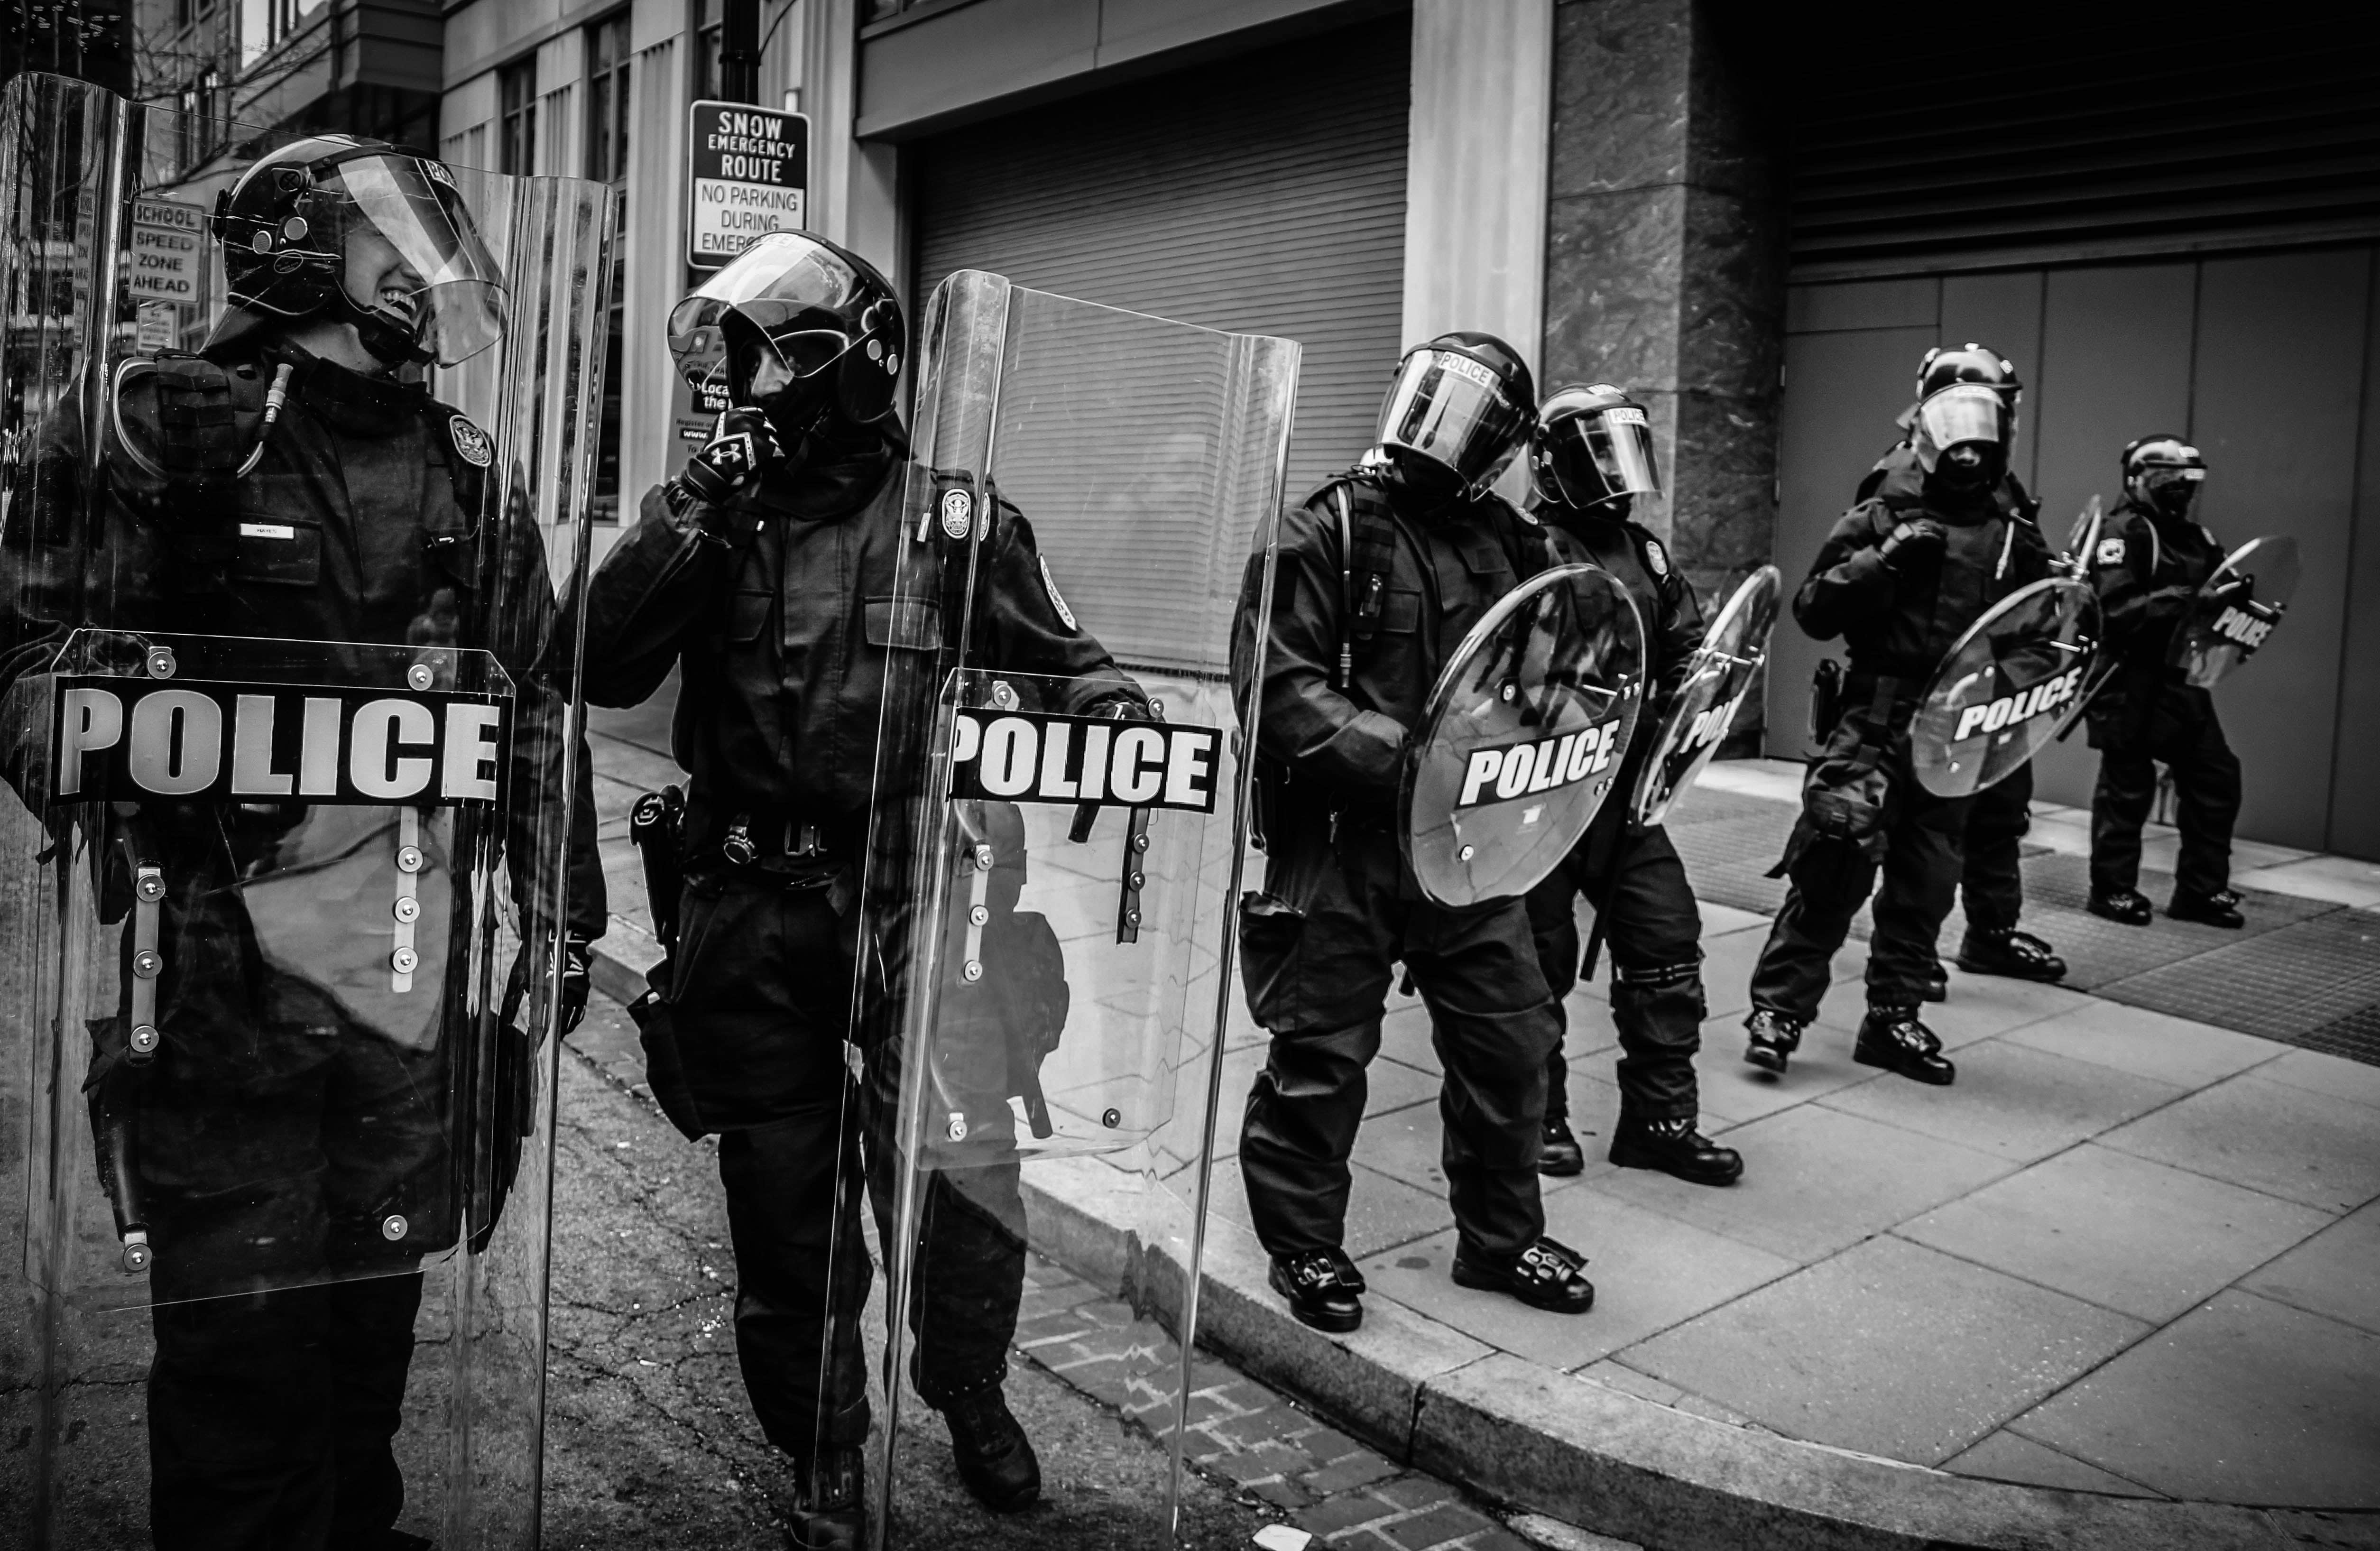 police officers protecting city